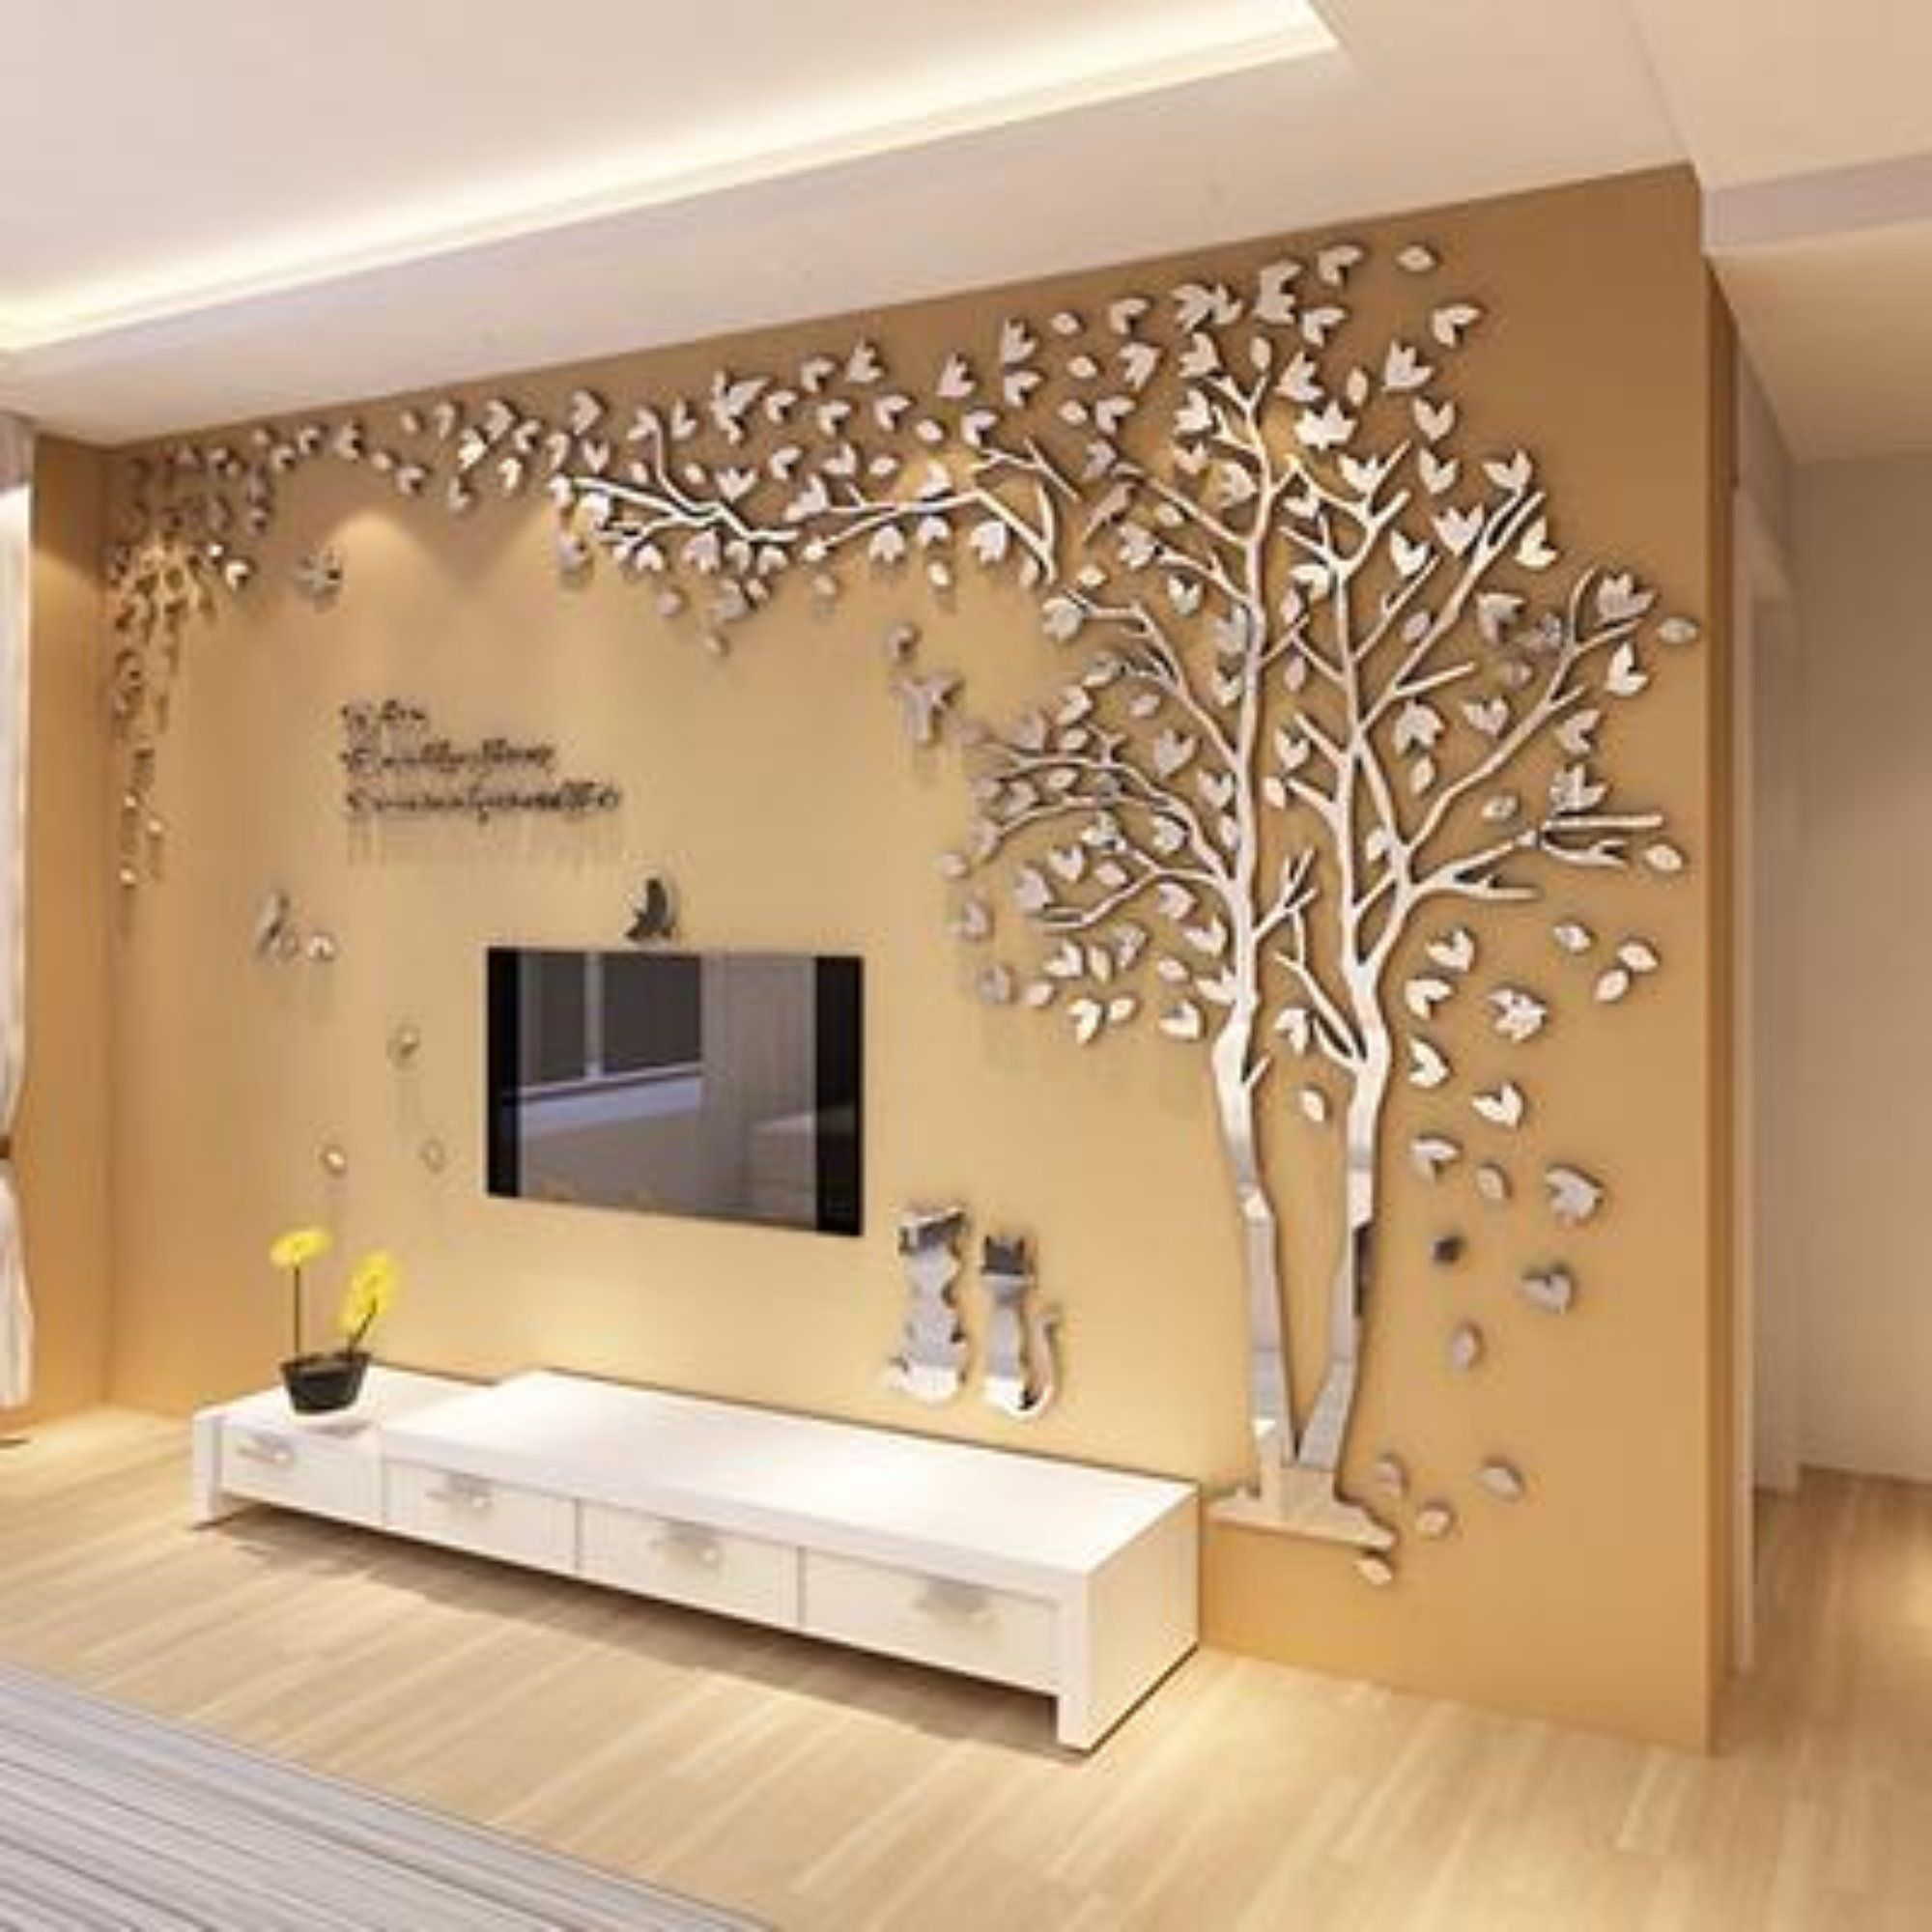 Couple Tree 3d Acrylic Stereo Creative Wall Stickers Living Room Wall Designs Wall Decor Living Room Creative Wall Decor